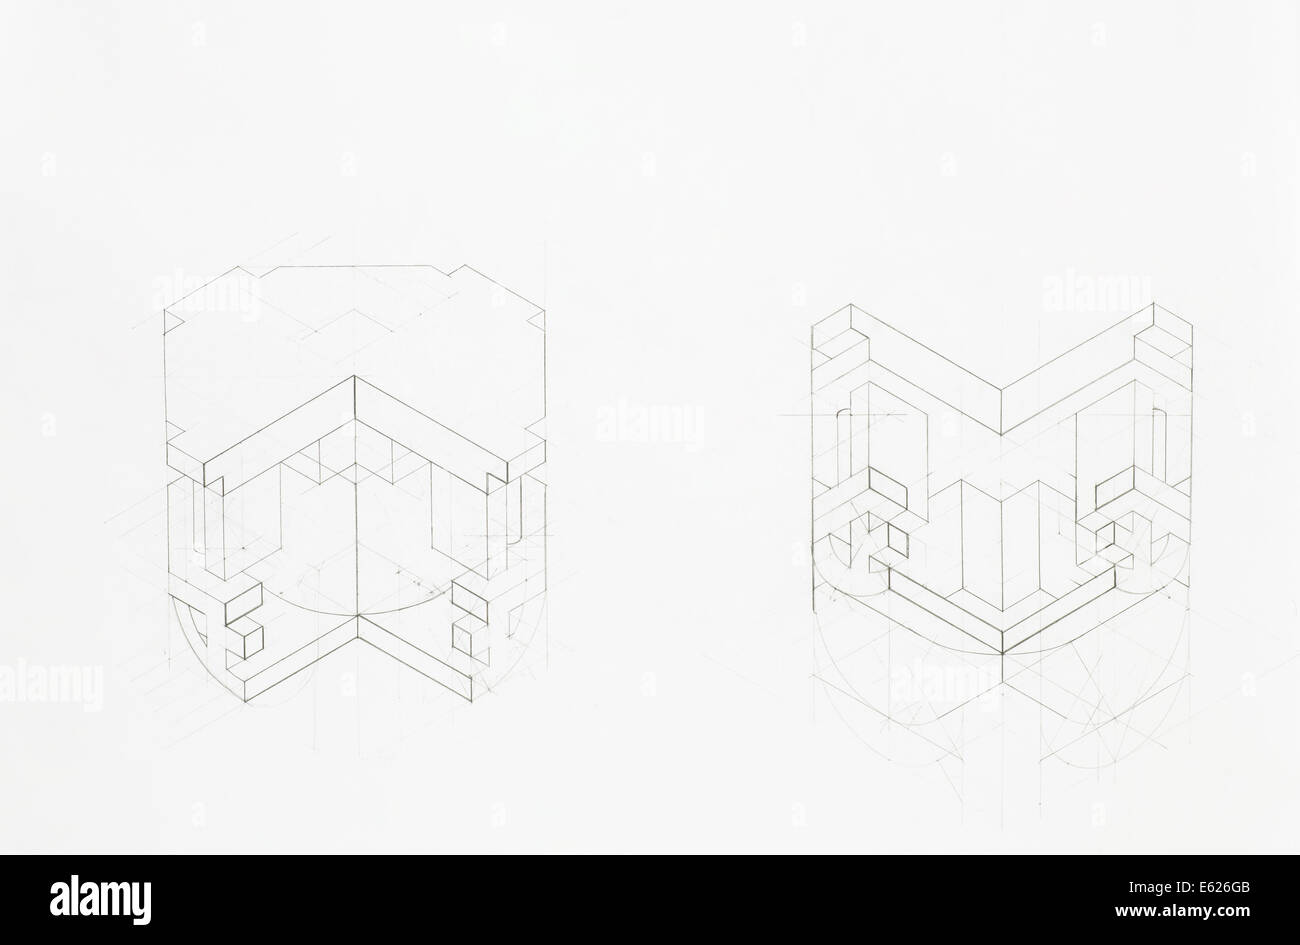 Architectural style cut out stock images pictures alamy architectural blueprint of structure of vaulted arch overview stock image malvernweather Image collections